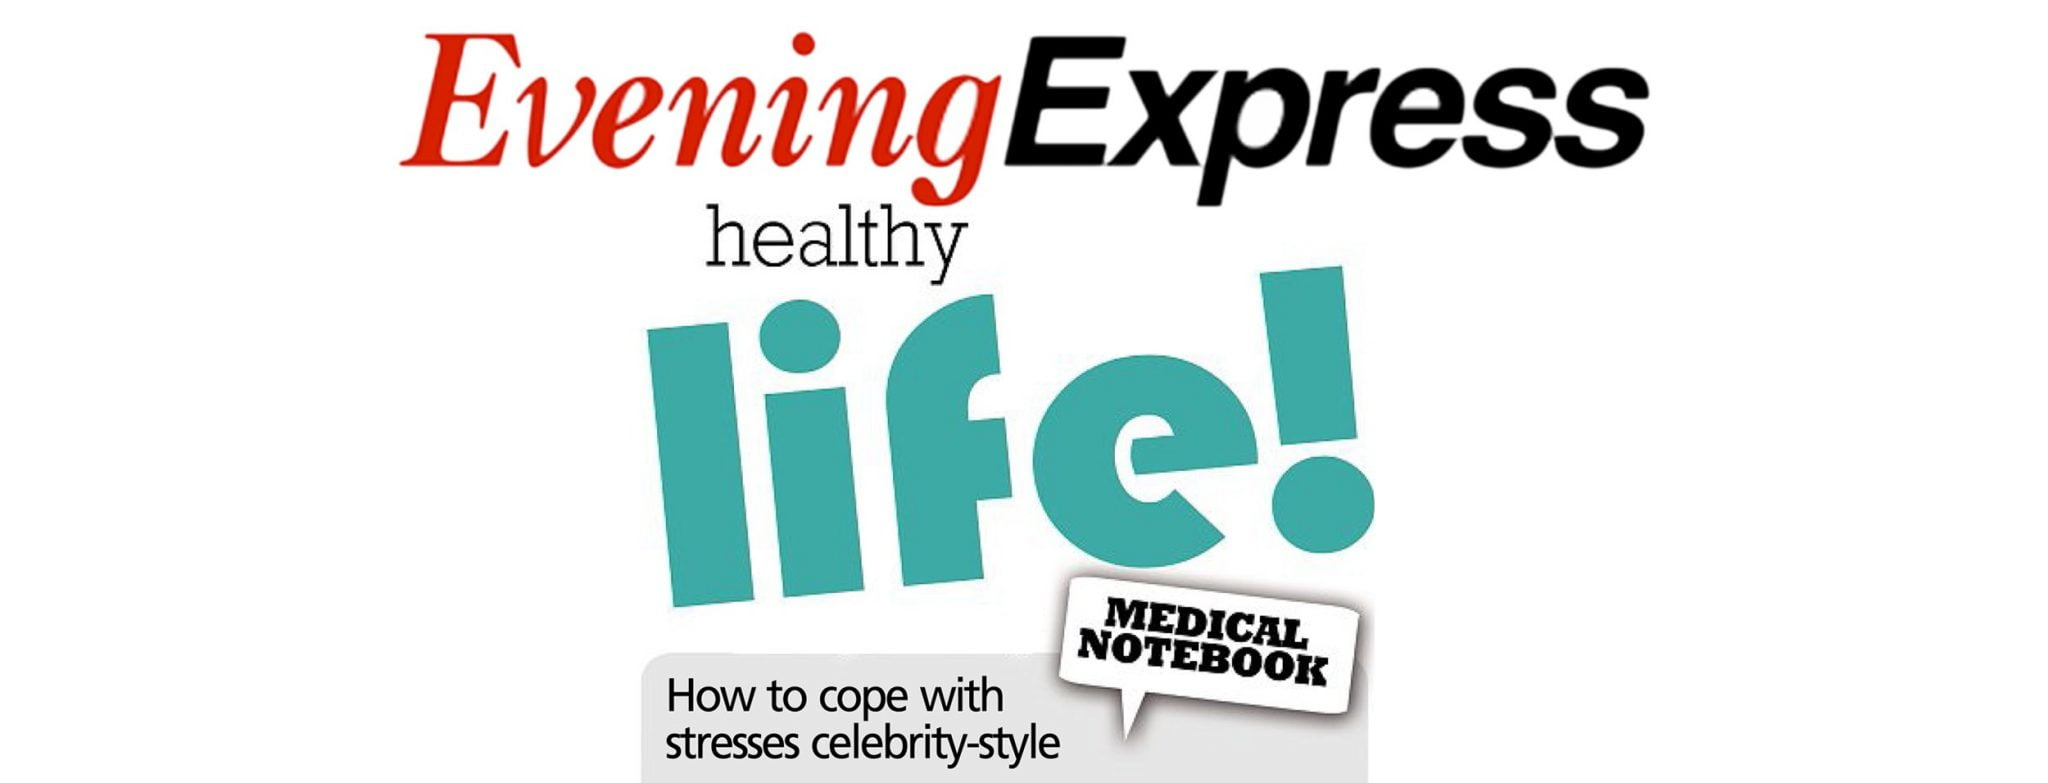 Aberdeen_Evening_Express_Healthy_Life